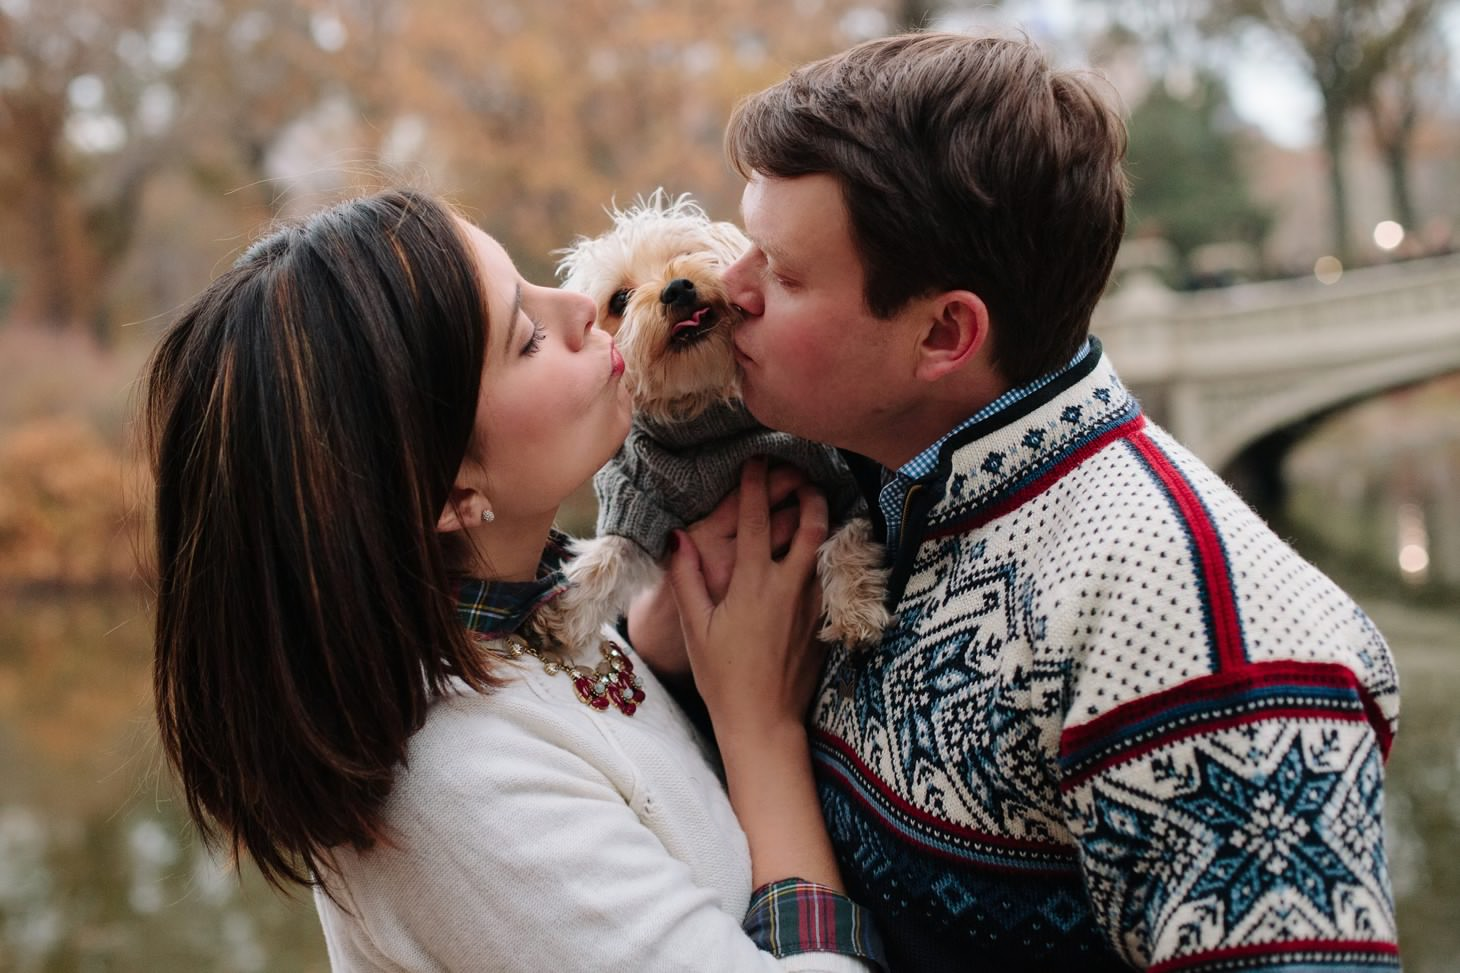 014-nyc-wedding-photographer-puppy-holiday-mini-session-fall-central-park.jpg